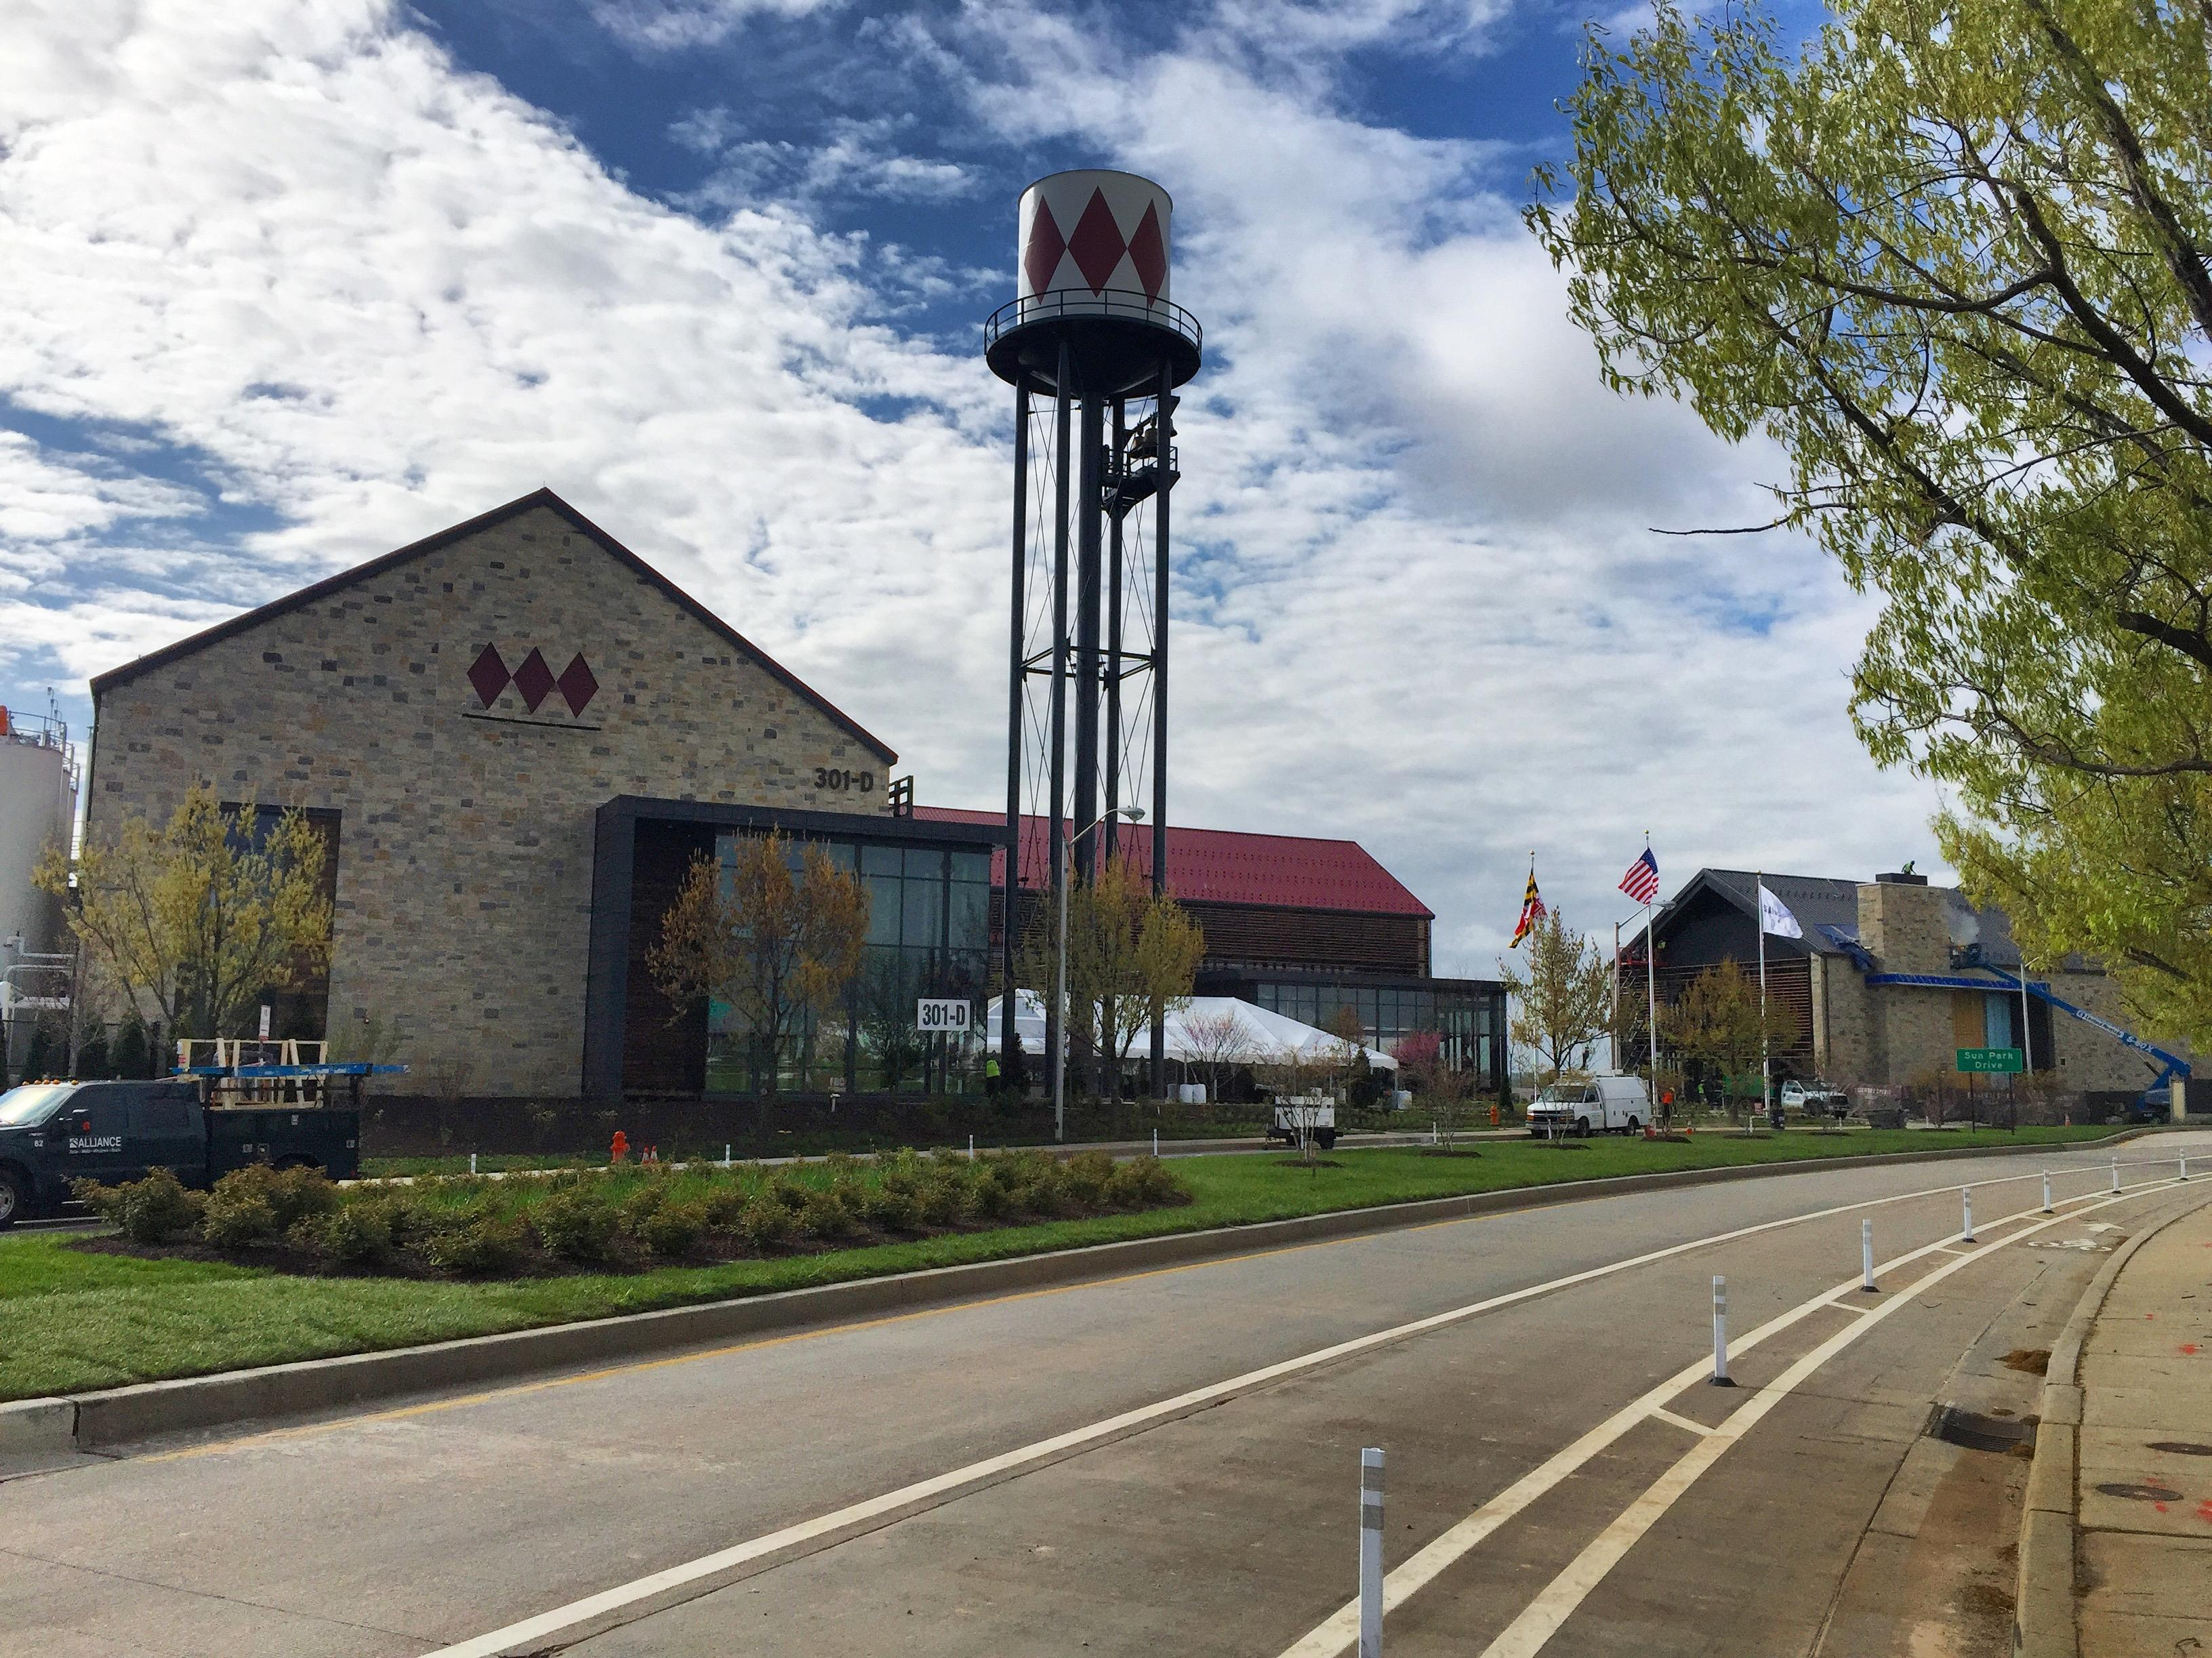 Sagamore Spirit's campus sits on five acres beside the Patapsco River and includes a 22,000 sq ft distillery building. (Photo courtesy Sagamore/Maroon PR)